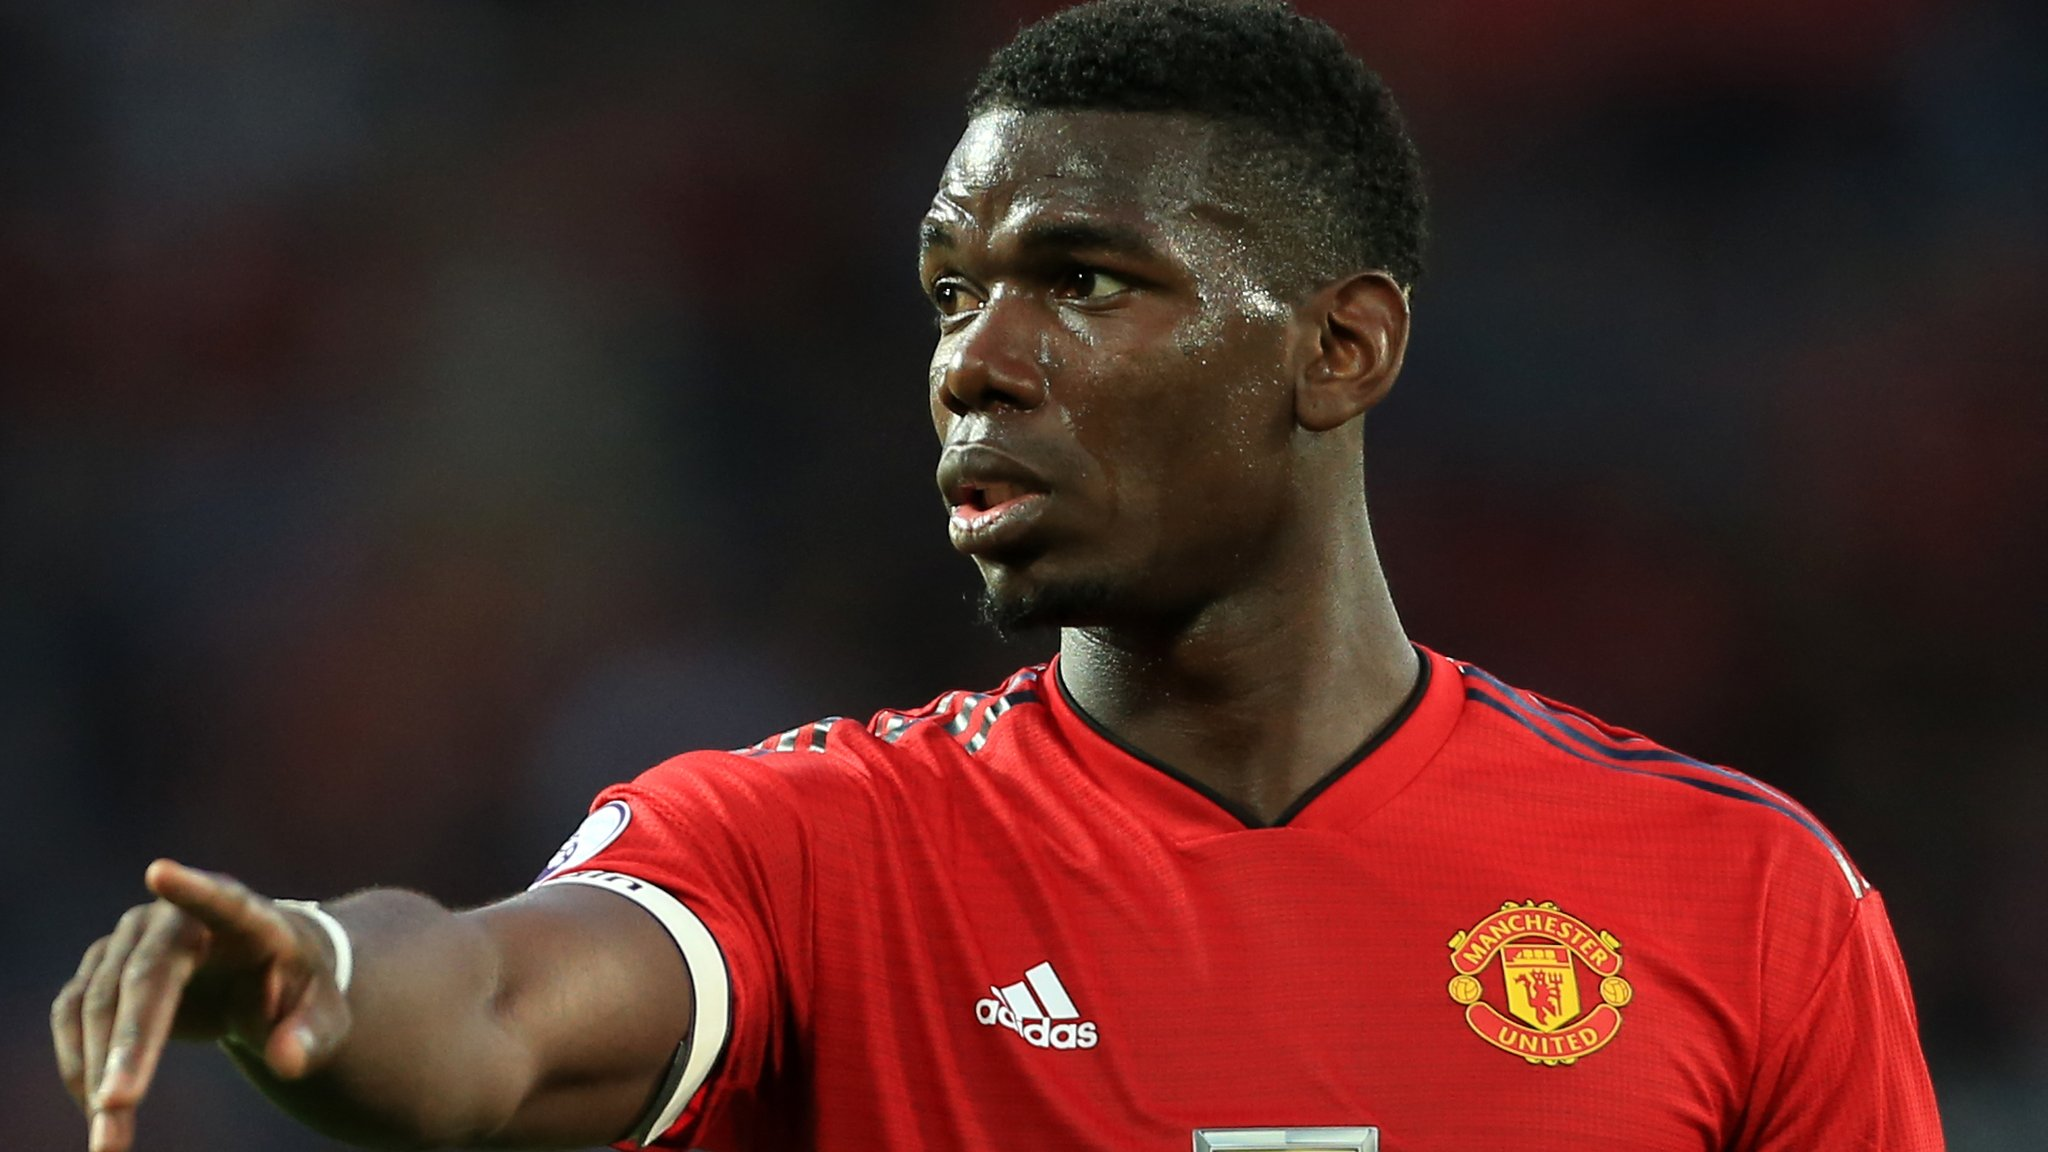 Man Utd refusing to sell Pogba - gossip